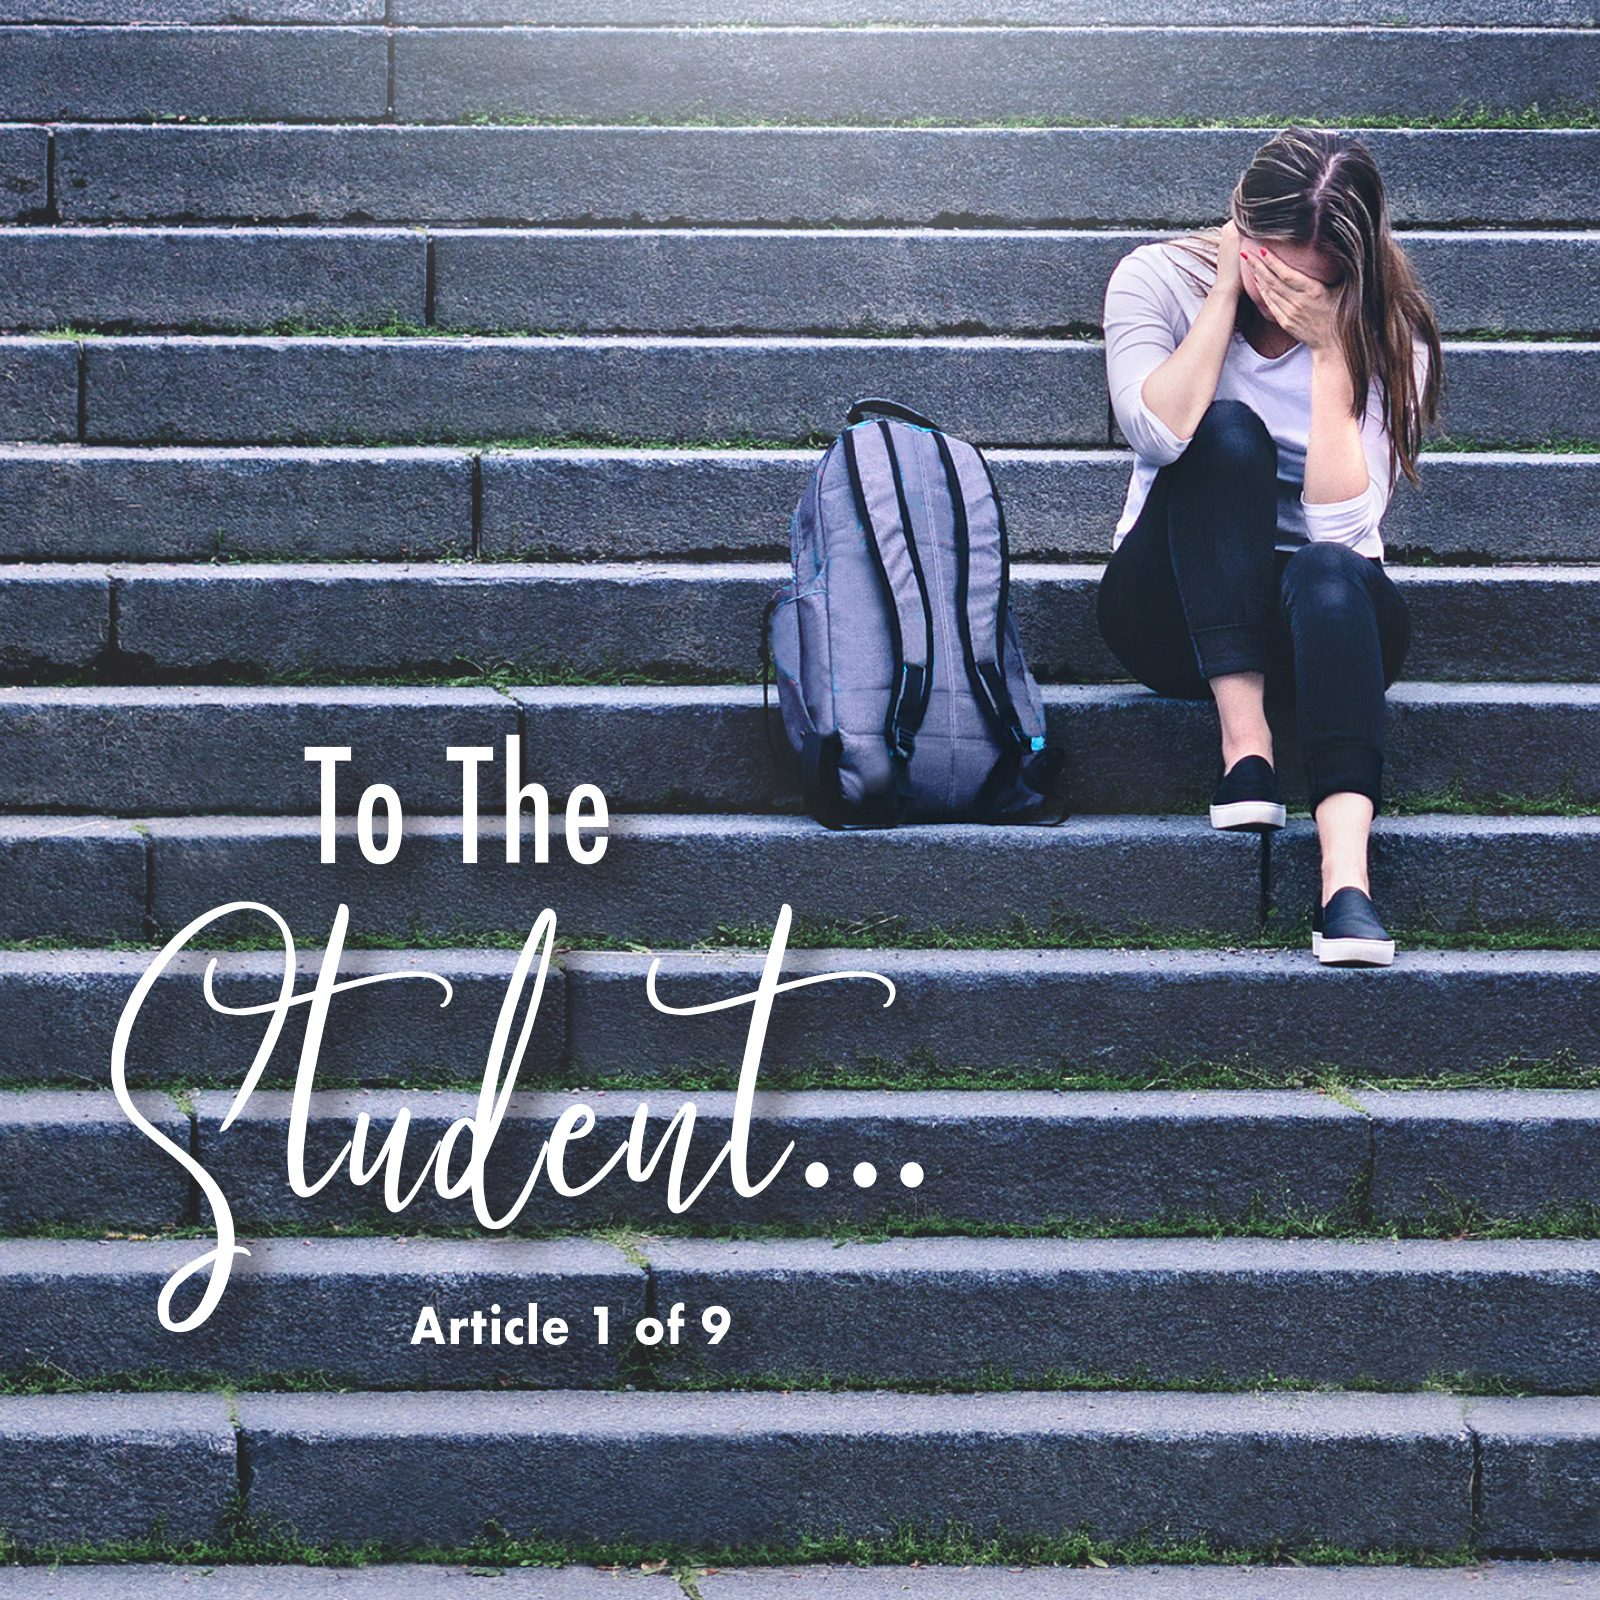 To the Student…